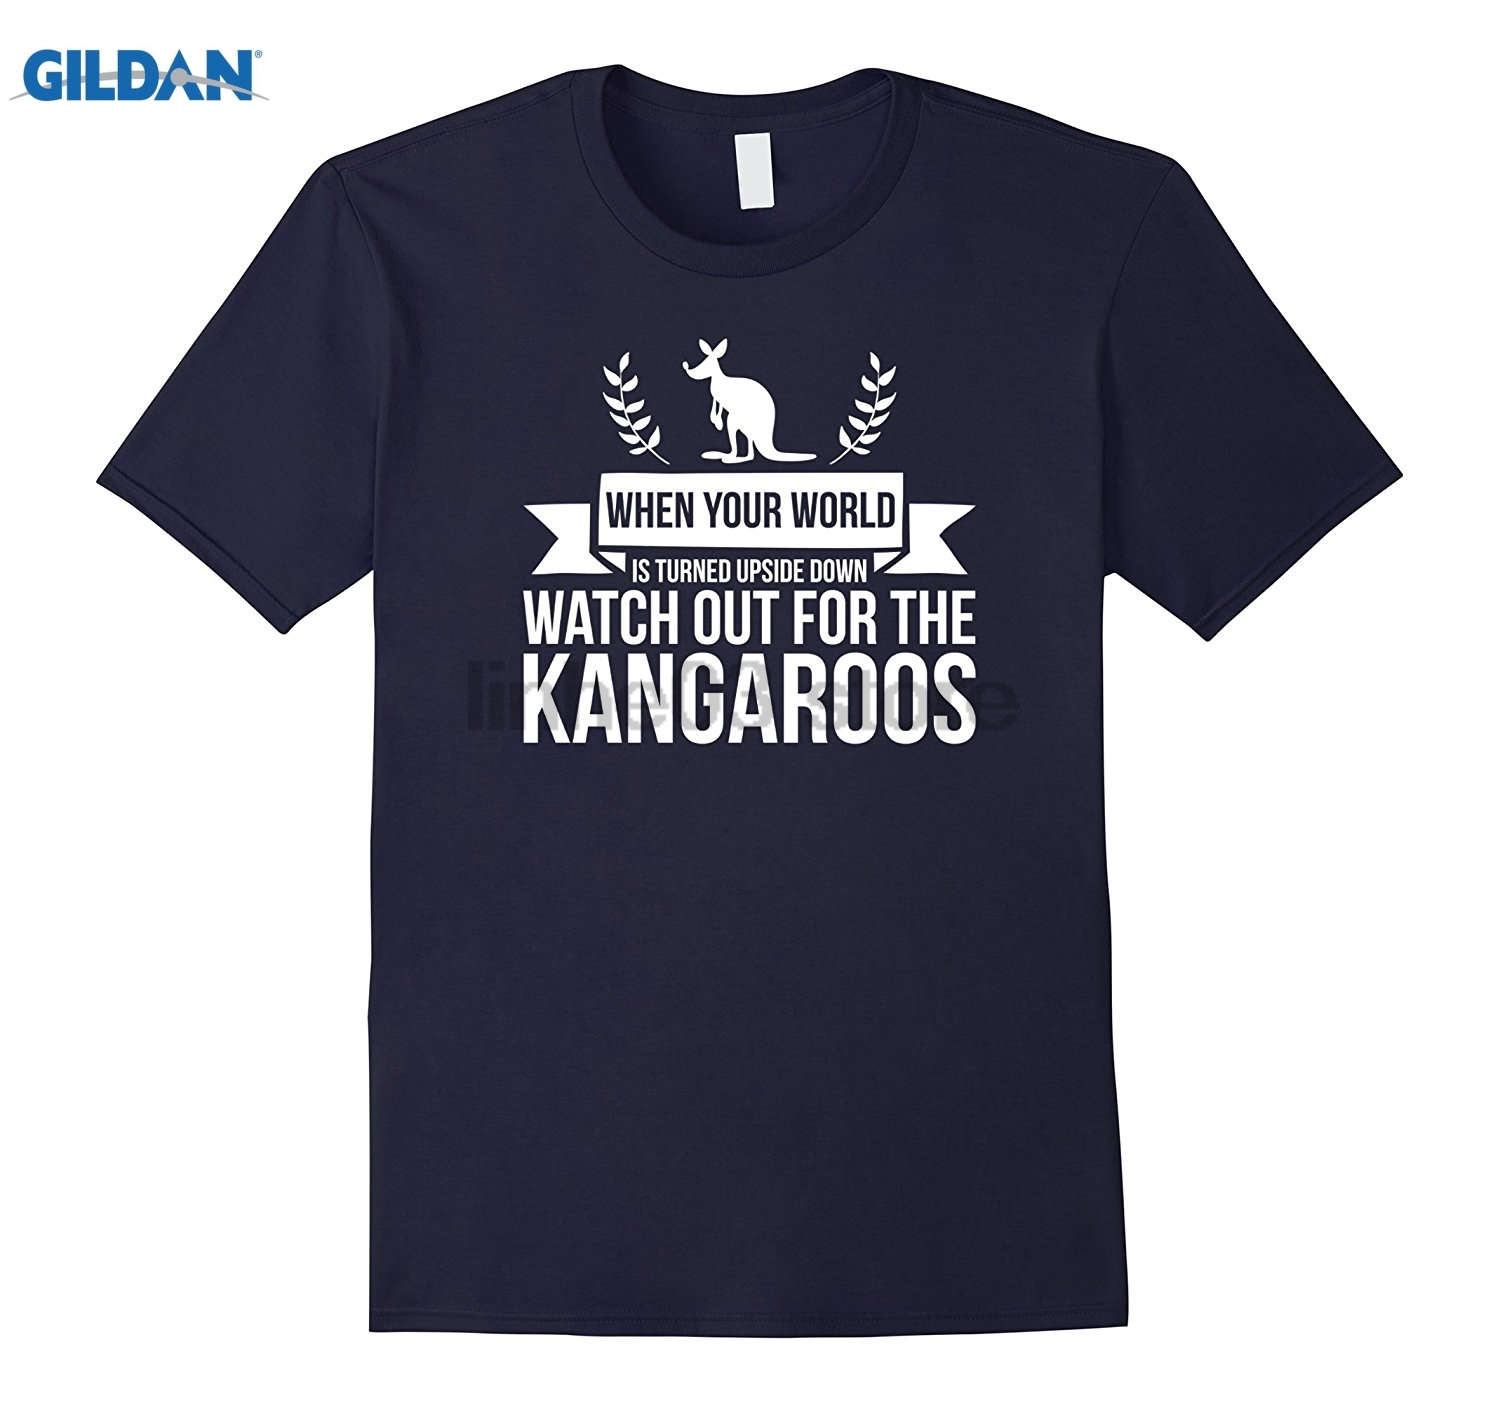 GILDAN When Your World Is Turned Upside Down Watch Out For Kangaroo Womens T-shirt Mothers Day Ms. T-shirt